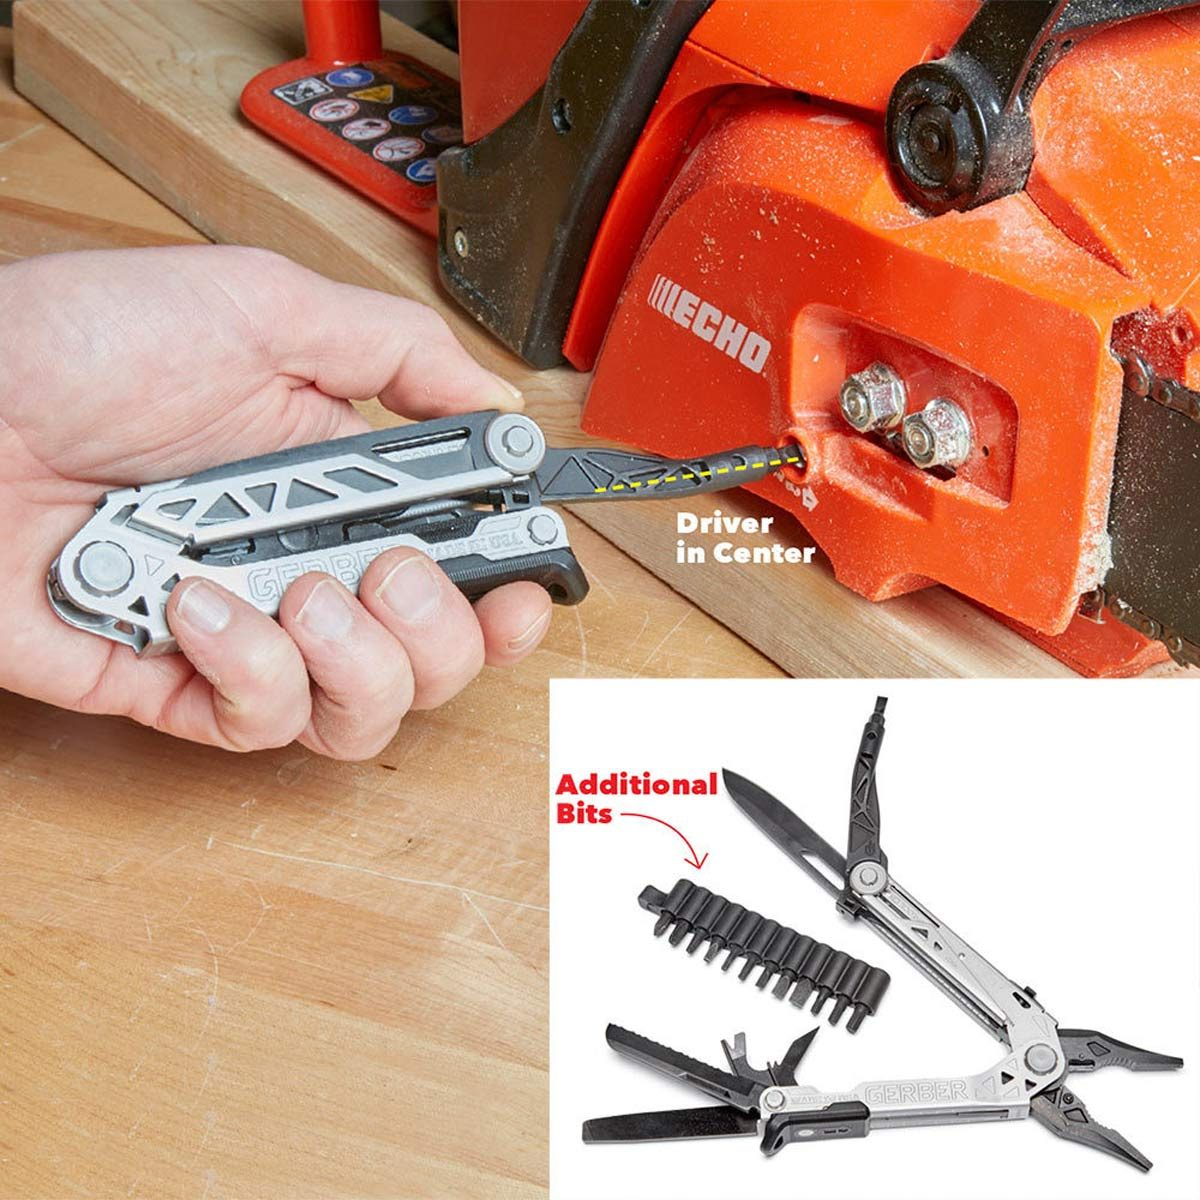 An Innovative Multi-tool